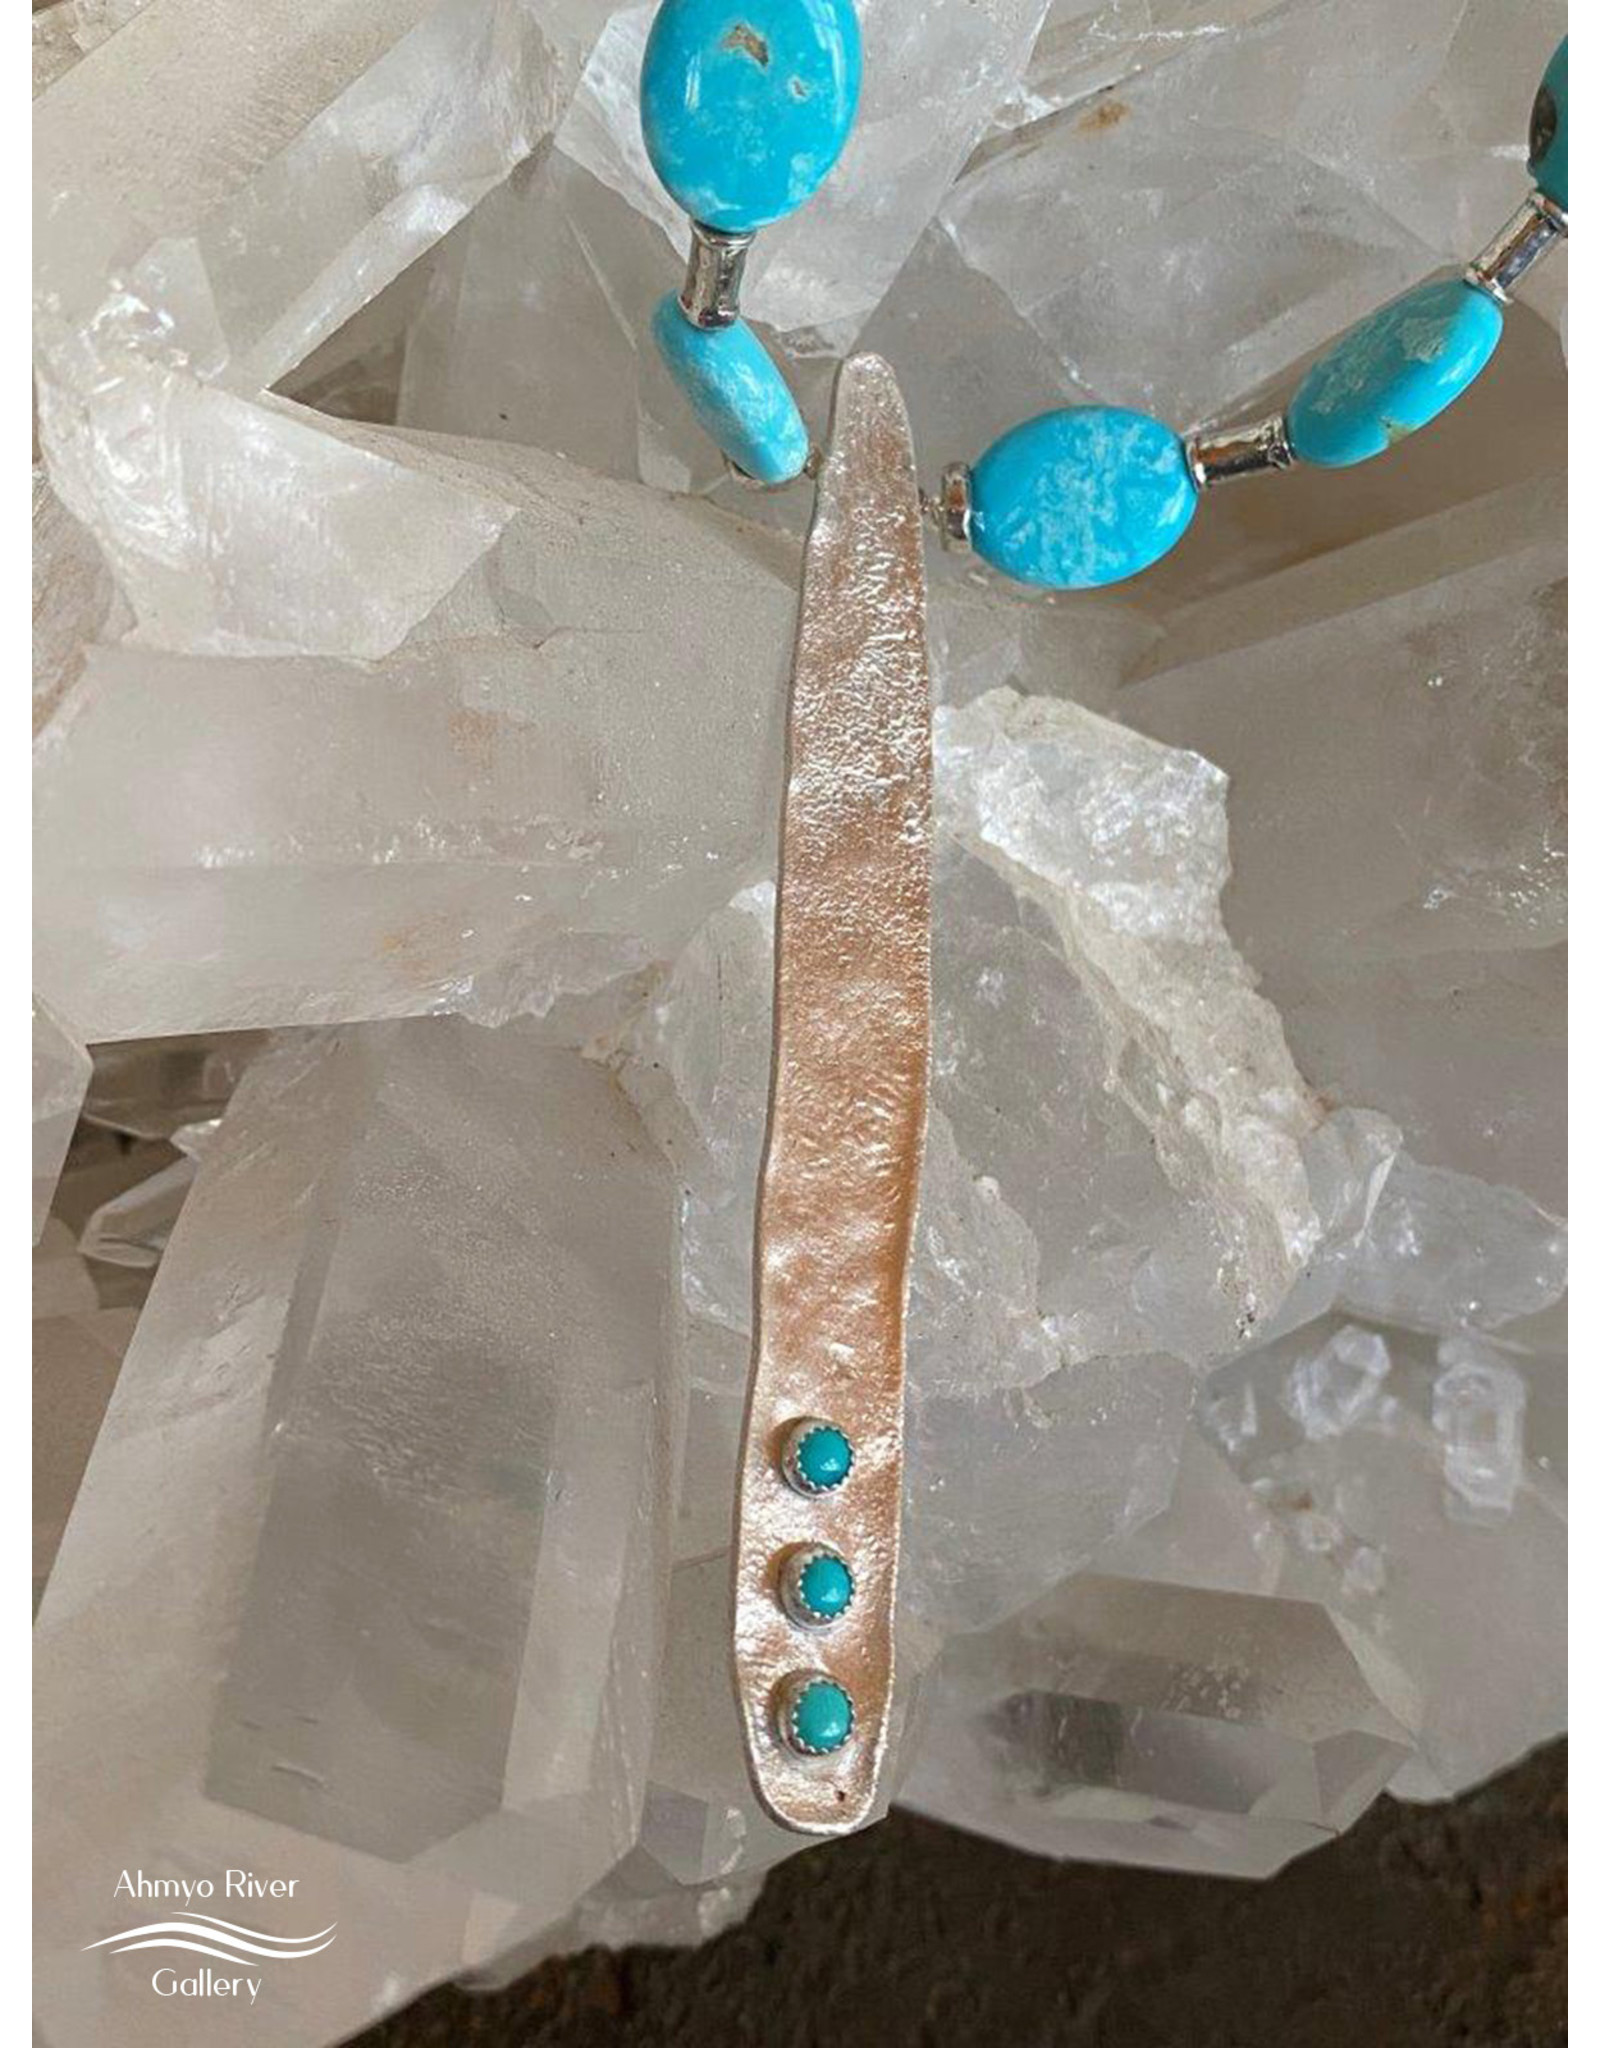 Annette Colby - Jeweler Sleeping Beauty Turquoise w/Reticulated Silver Necklace - Annette Colby